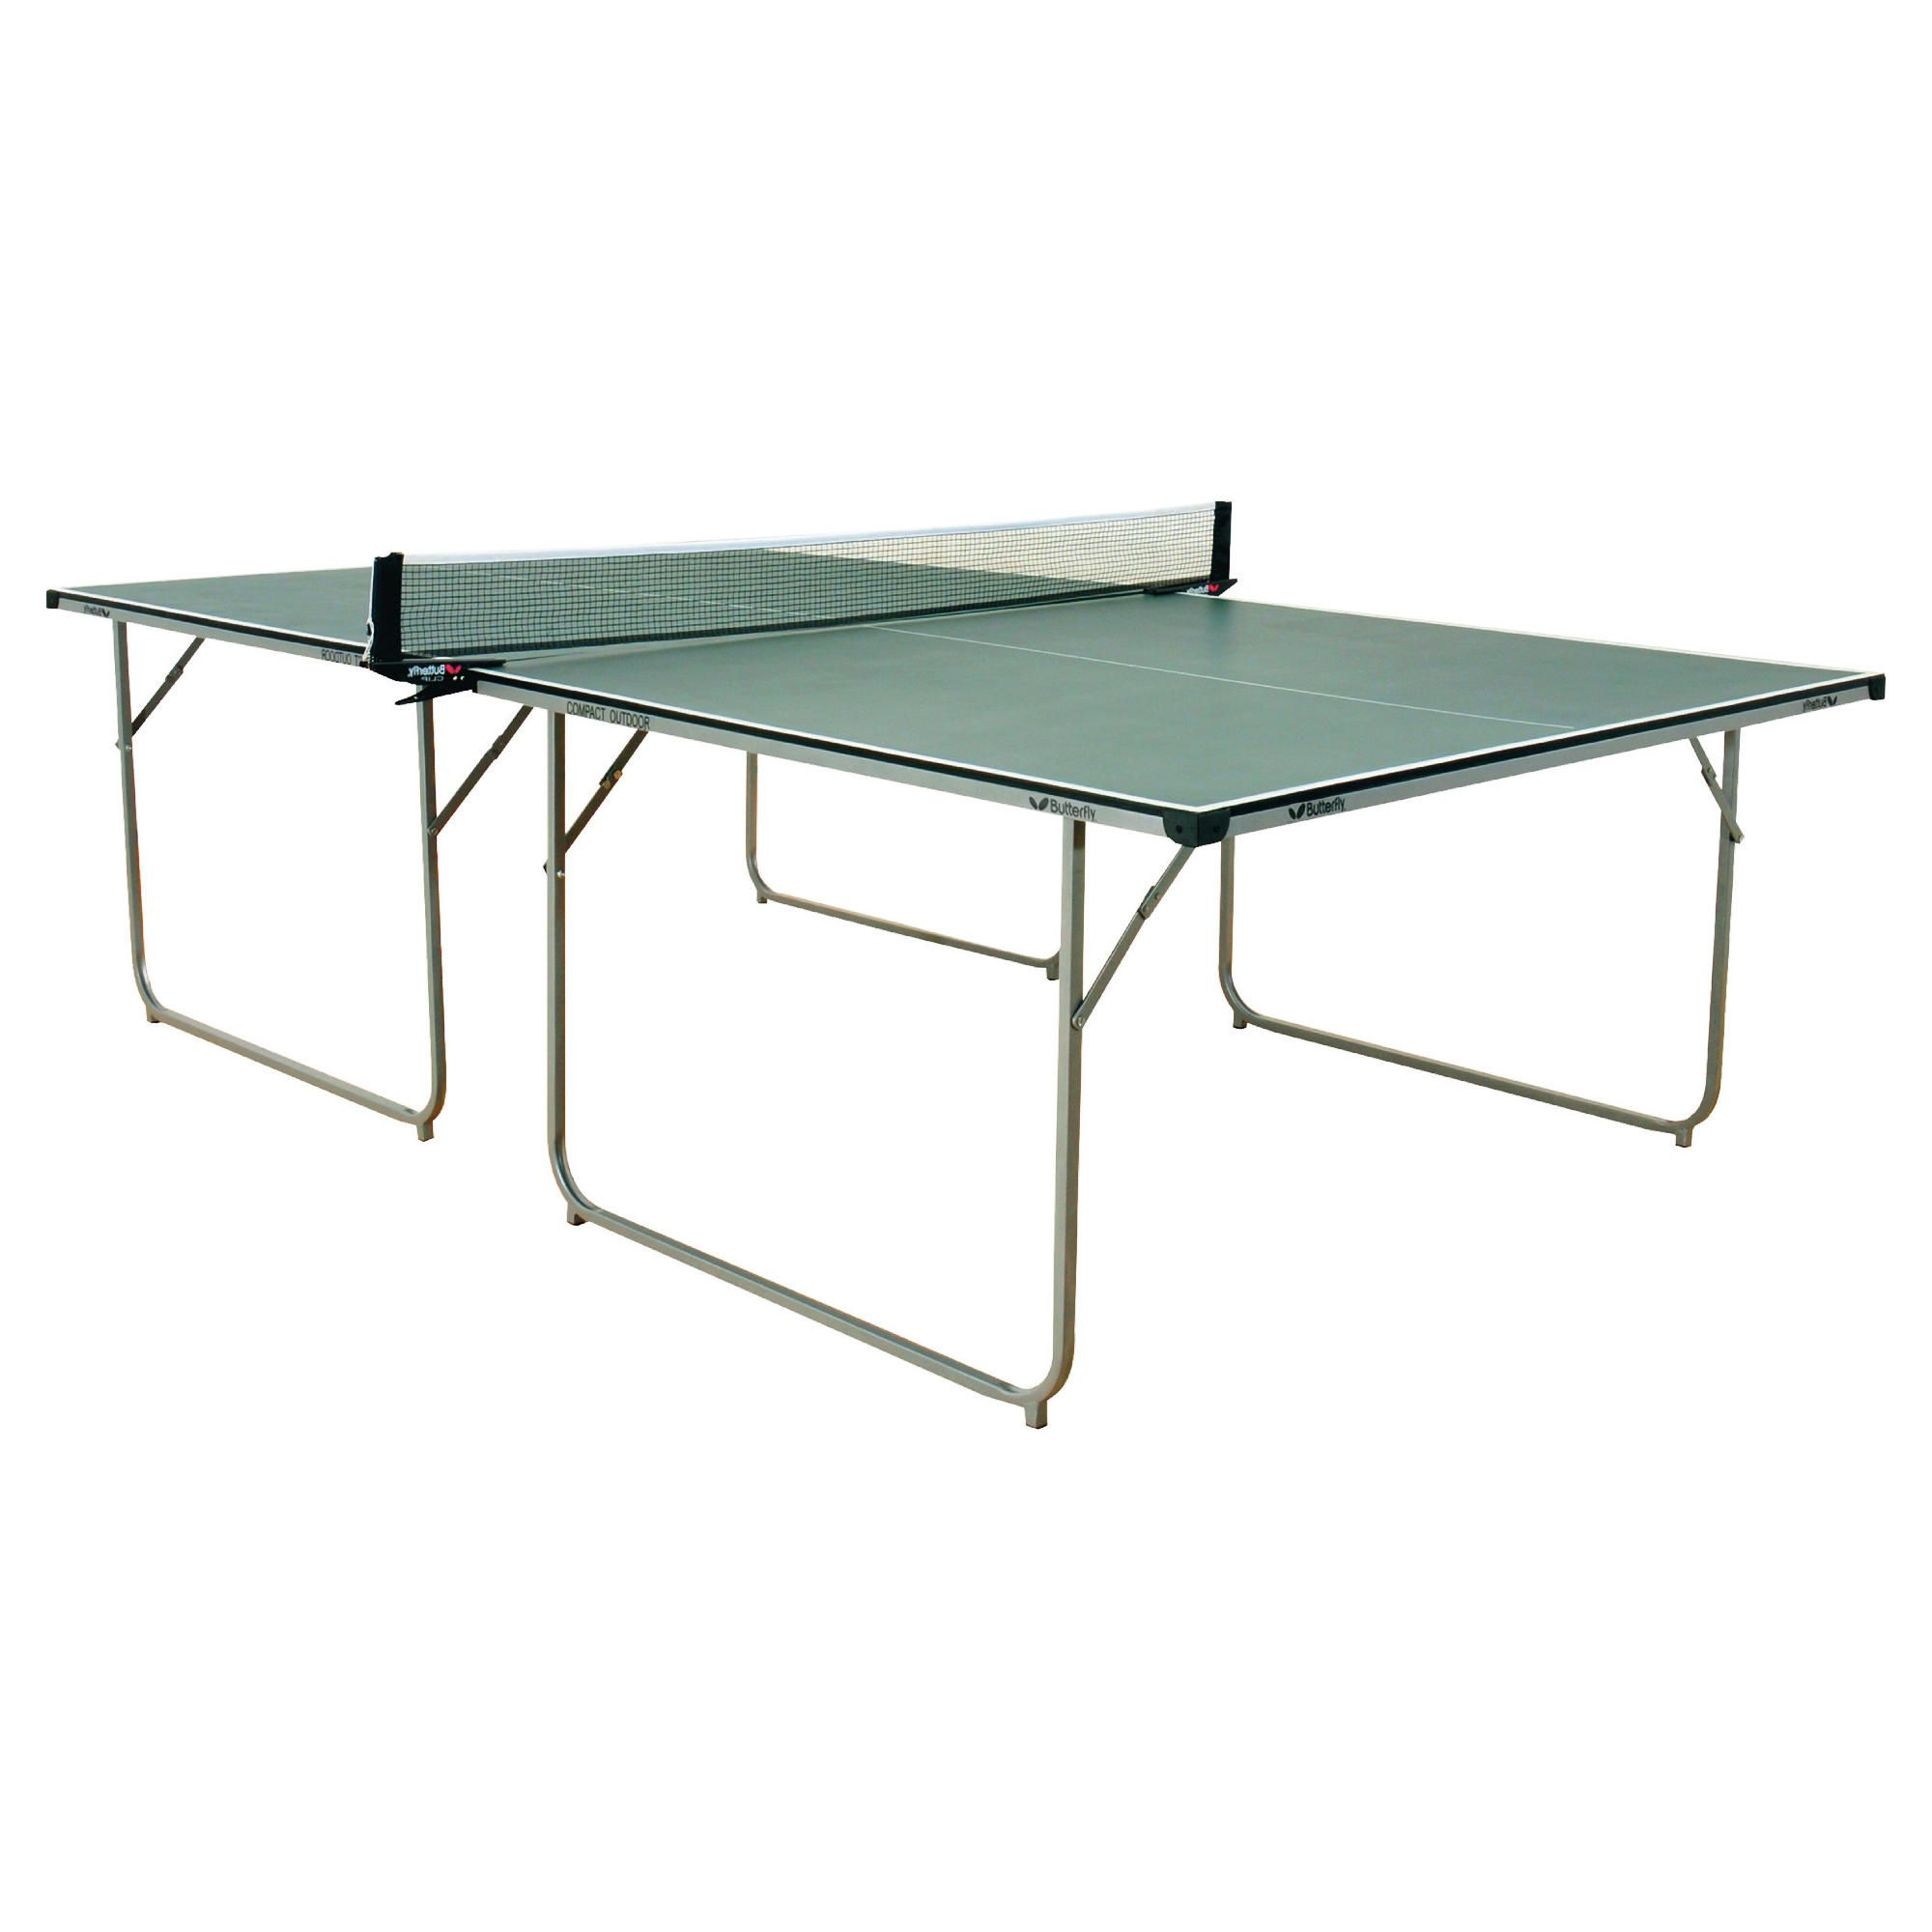 Butterfly Compact Outdoor Table Tennis Table - Green at Tesco Direct